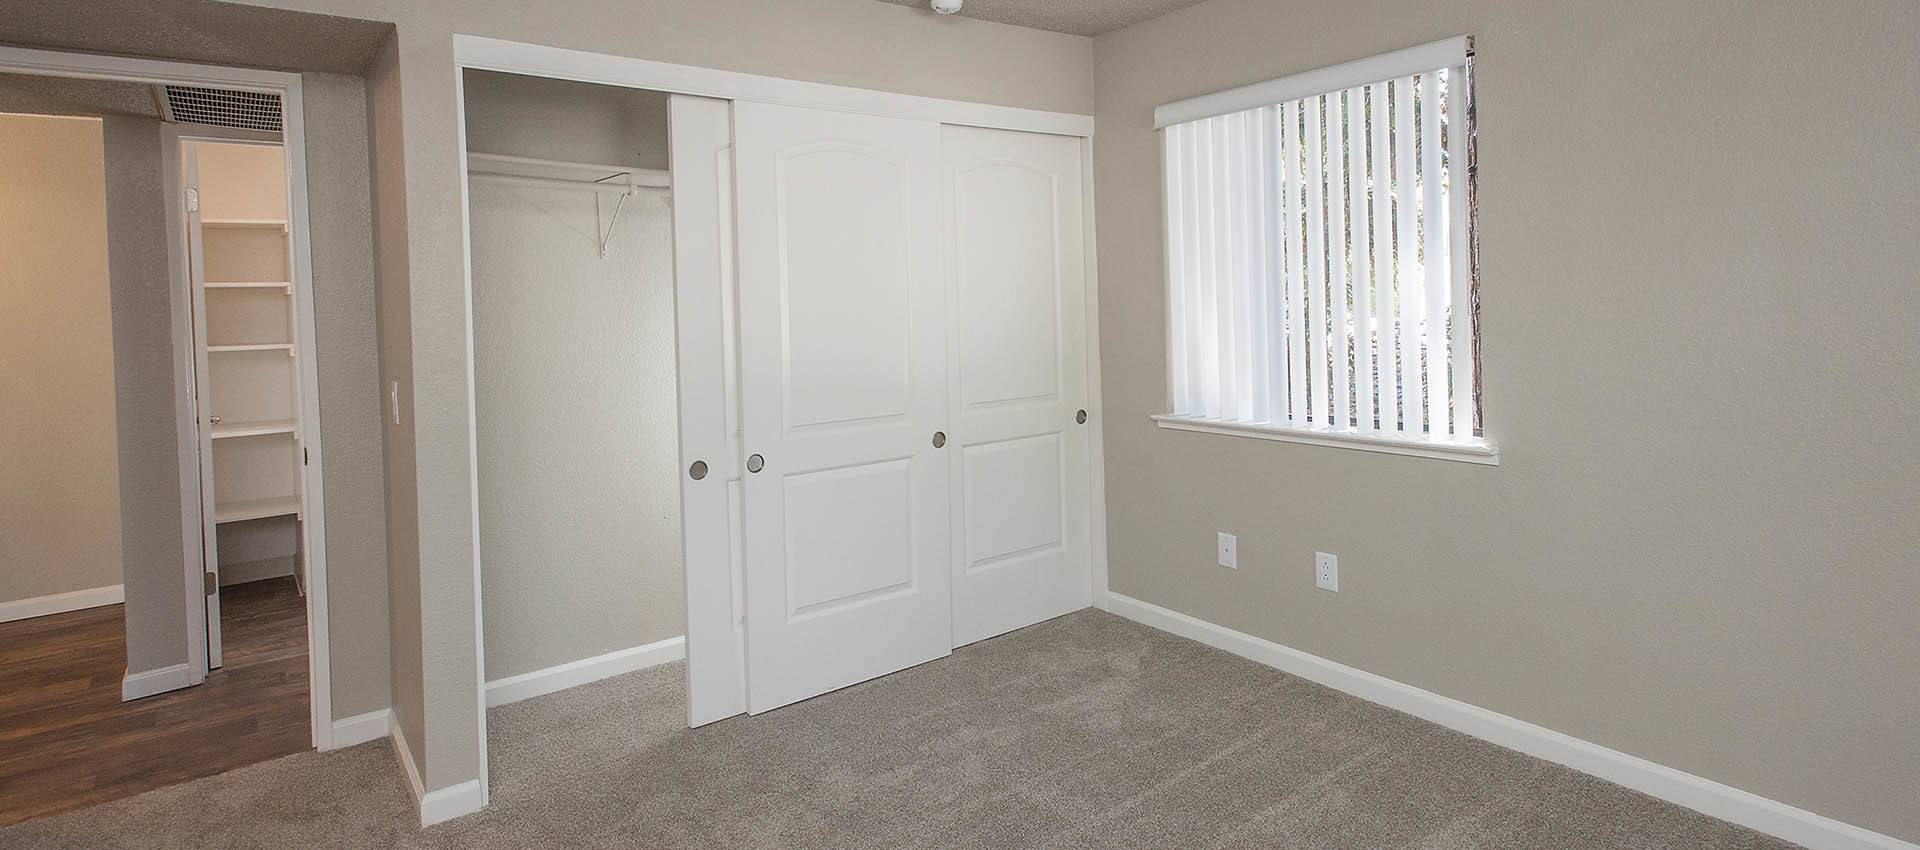 Large Closet In Bedroom at Plum Tree Apartment Homes in Martinez, California